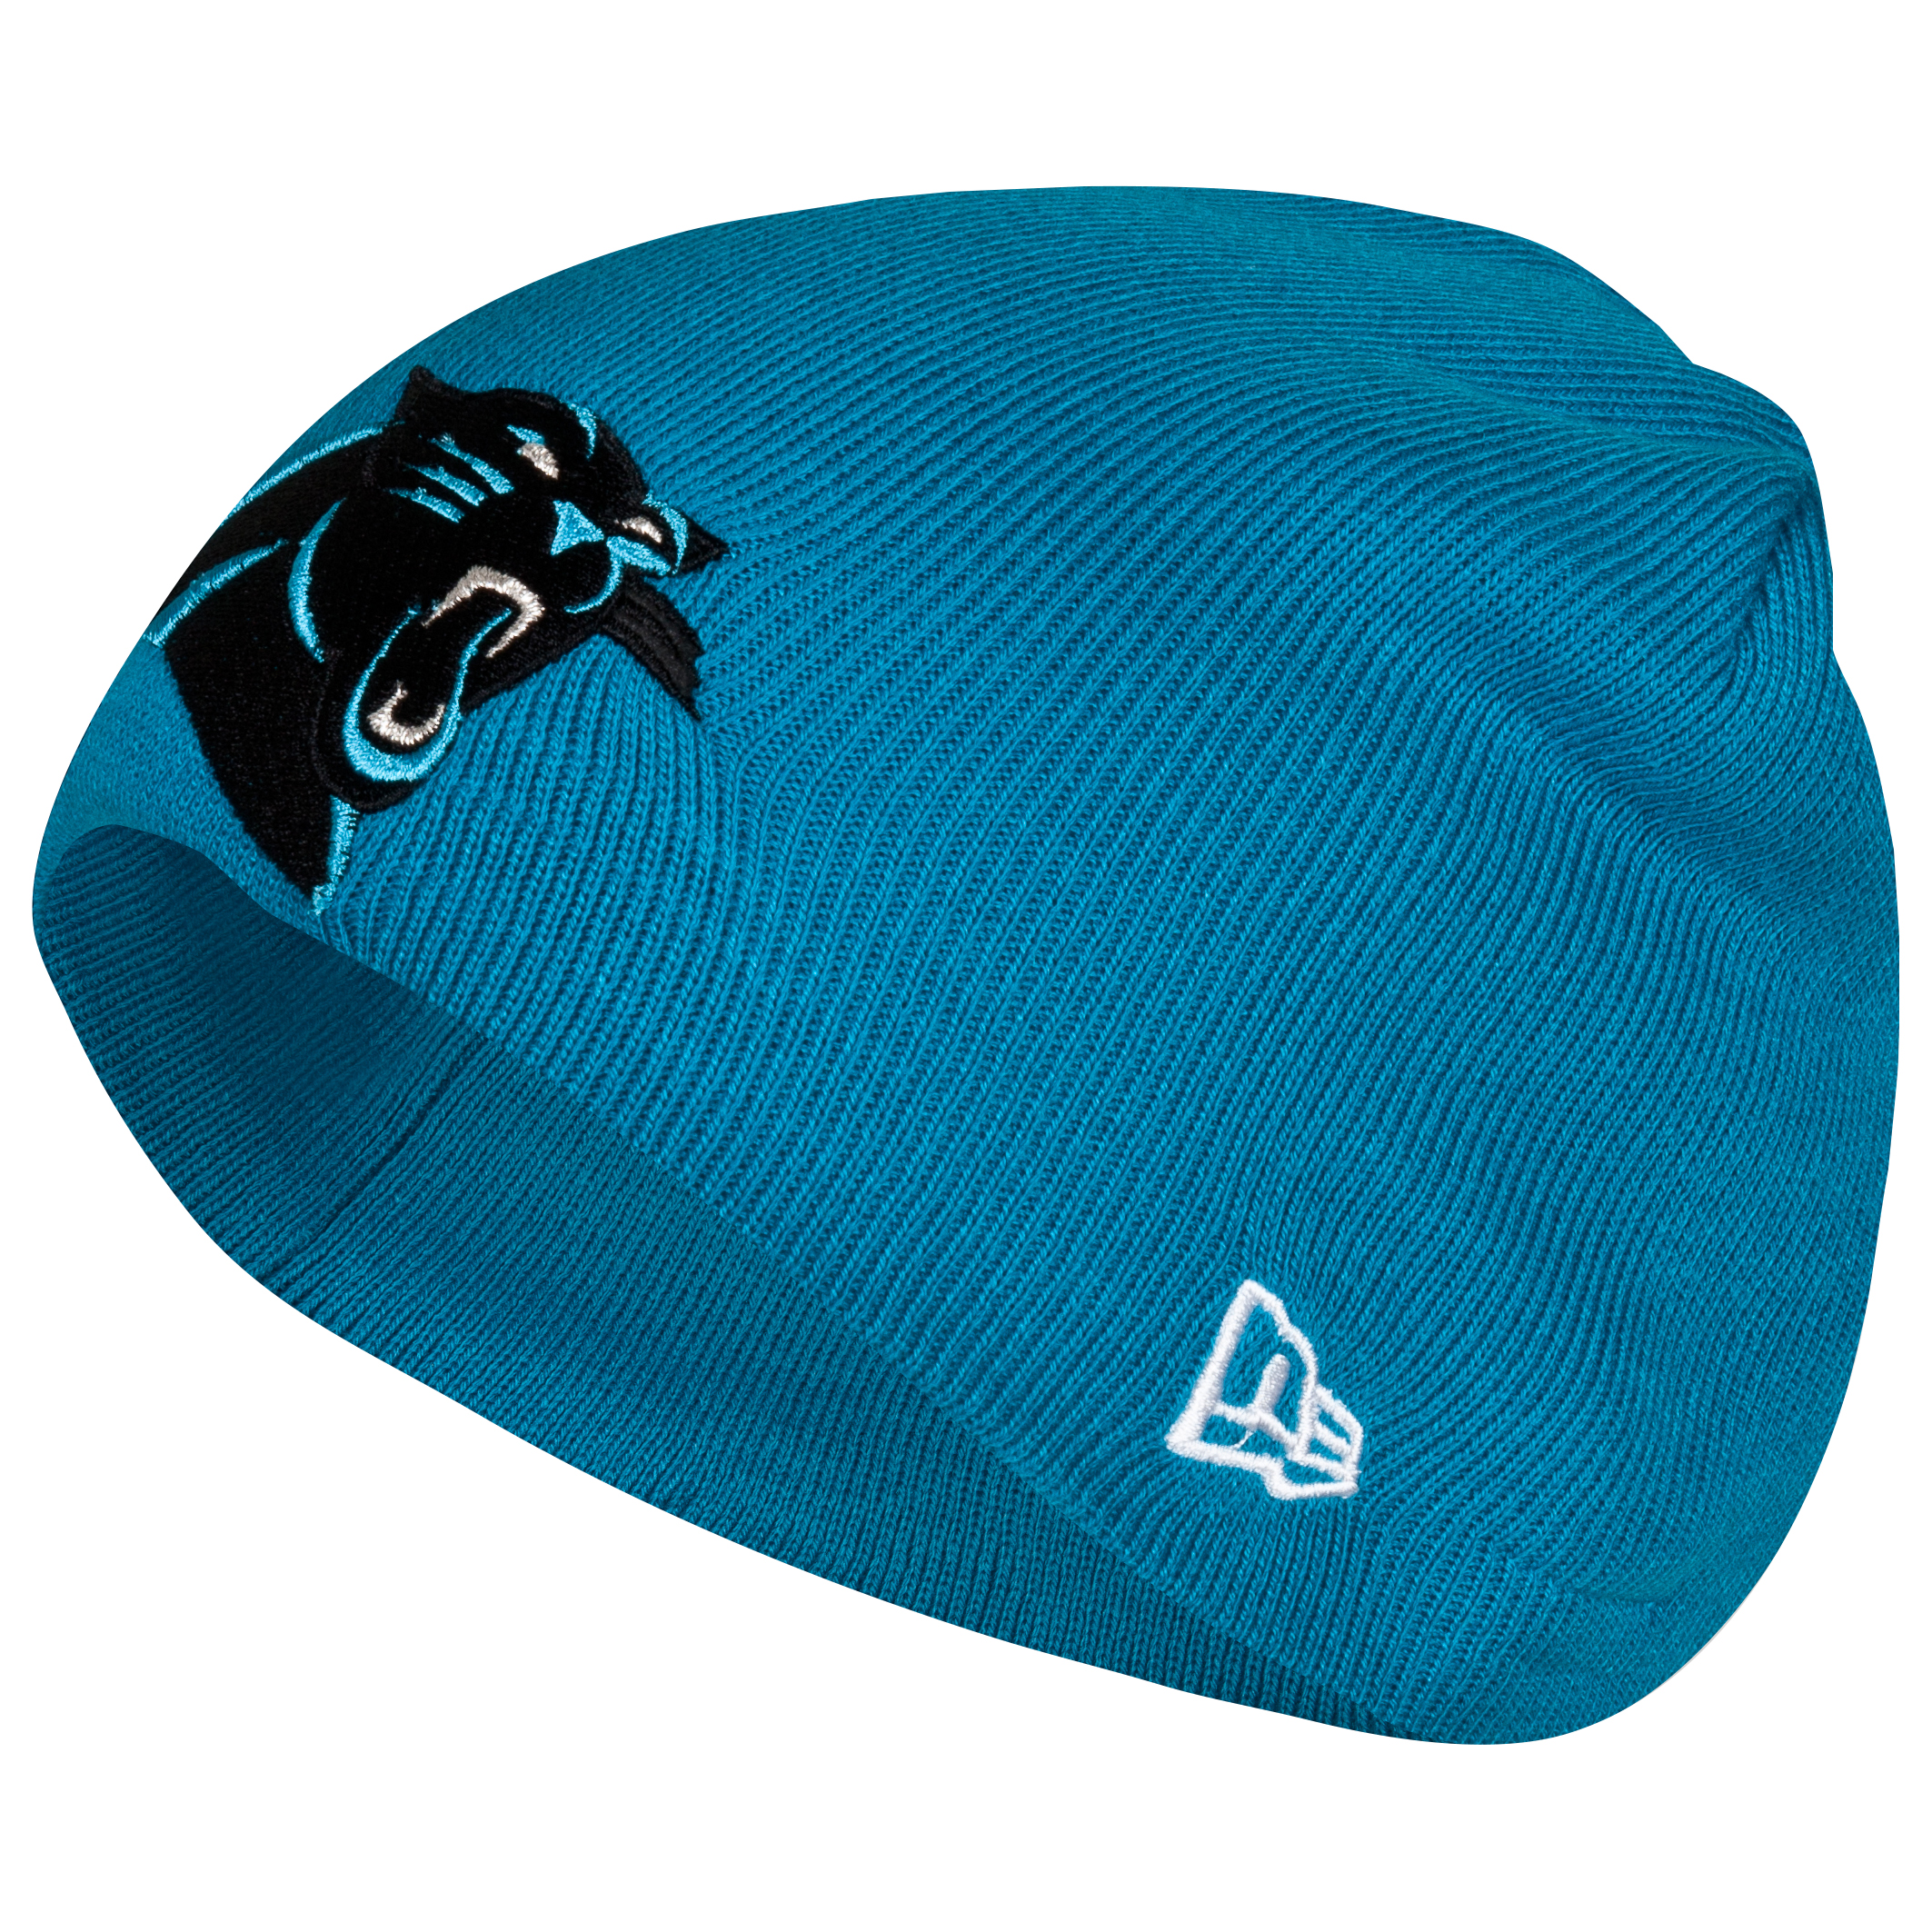 Carolina Panthers Basic Beanie